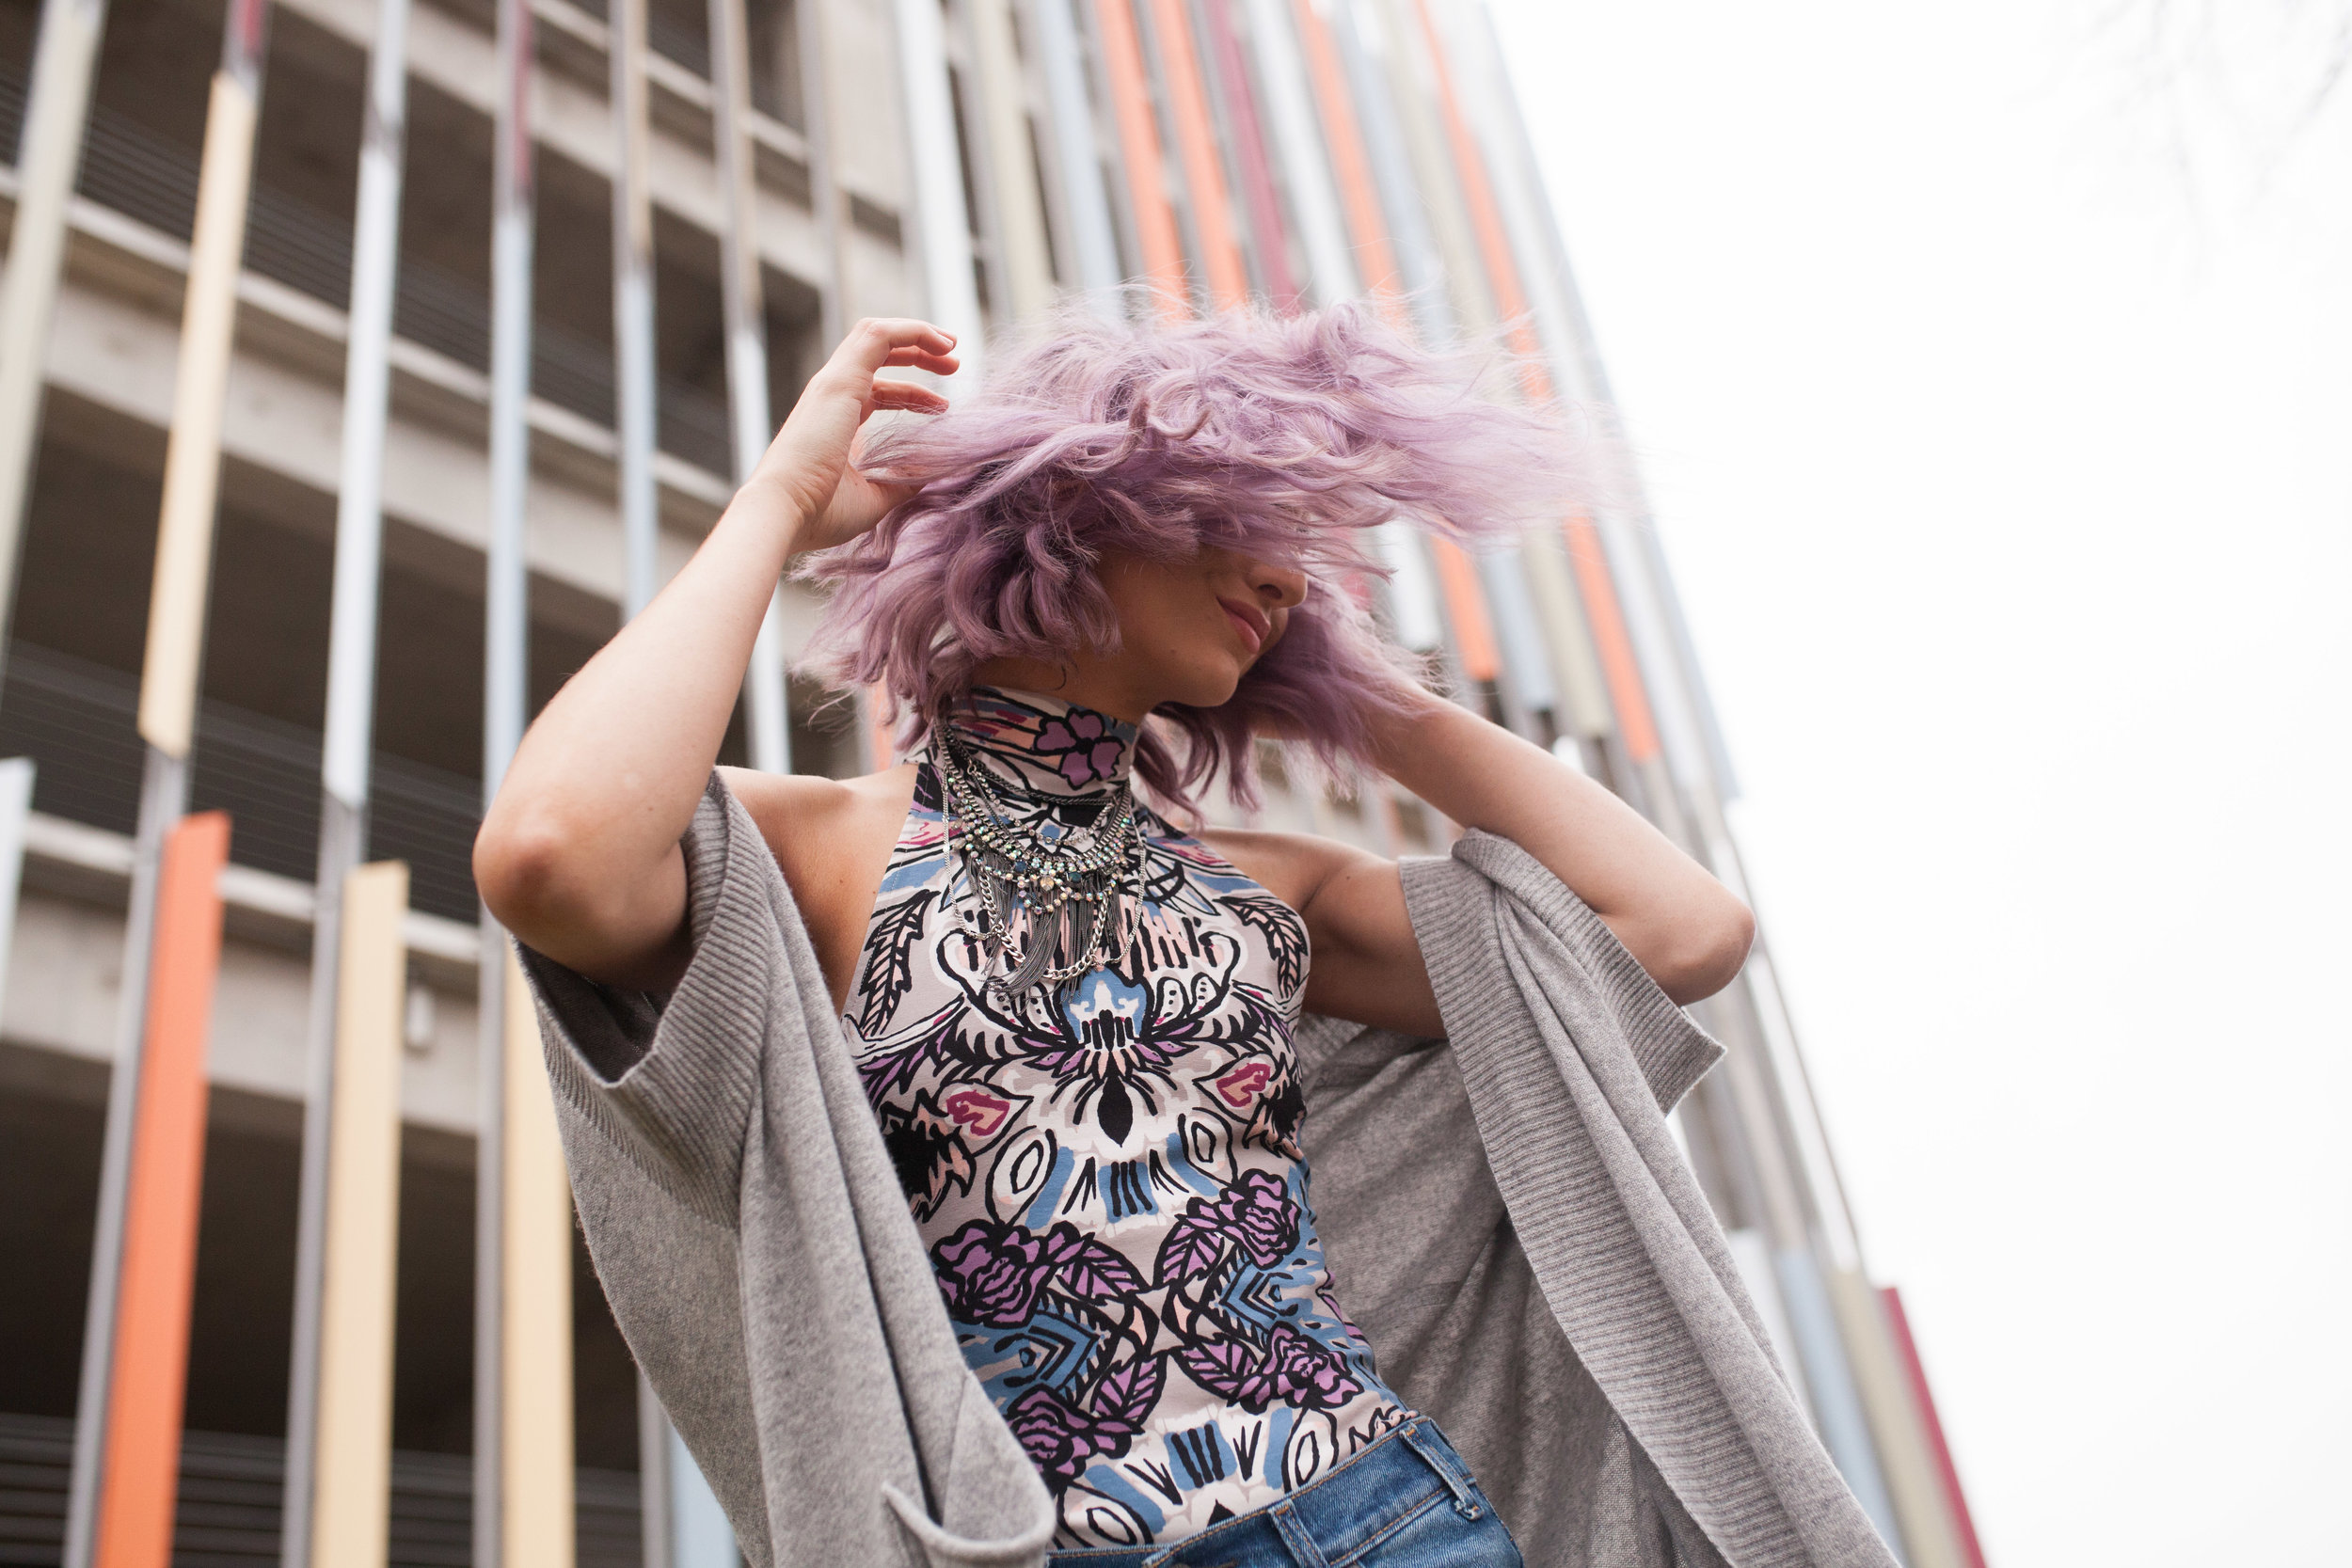 Photos for @FPGreatLakes in @FreePeople by @elow24  Fantastic beautiful model: @embethleb